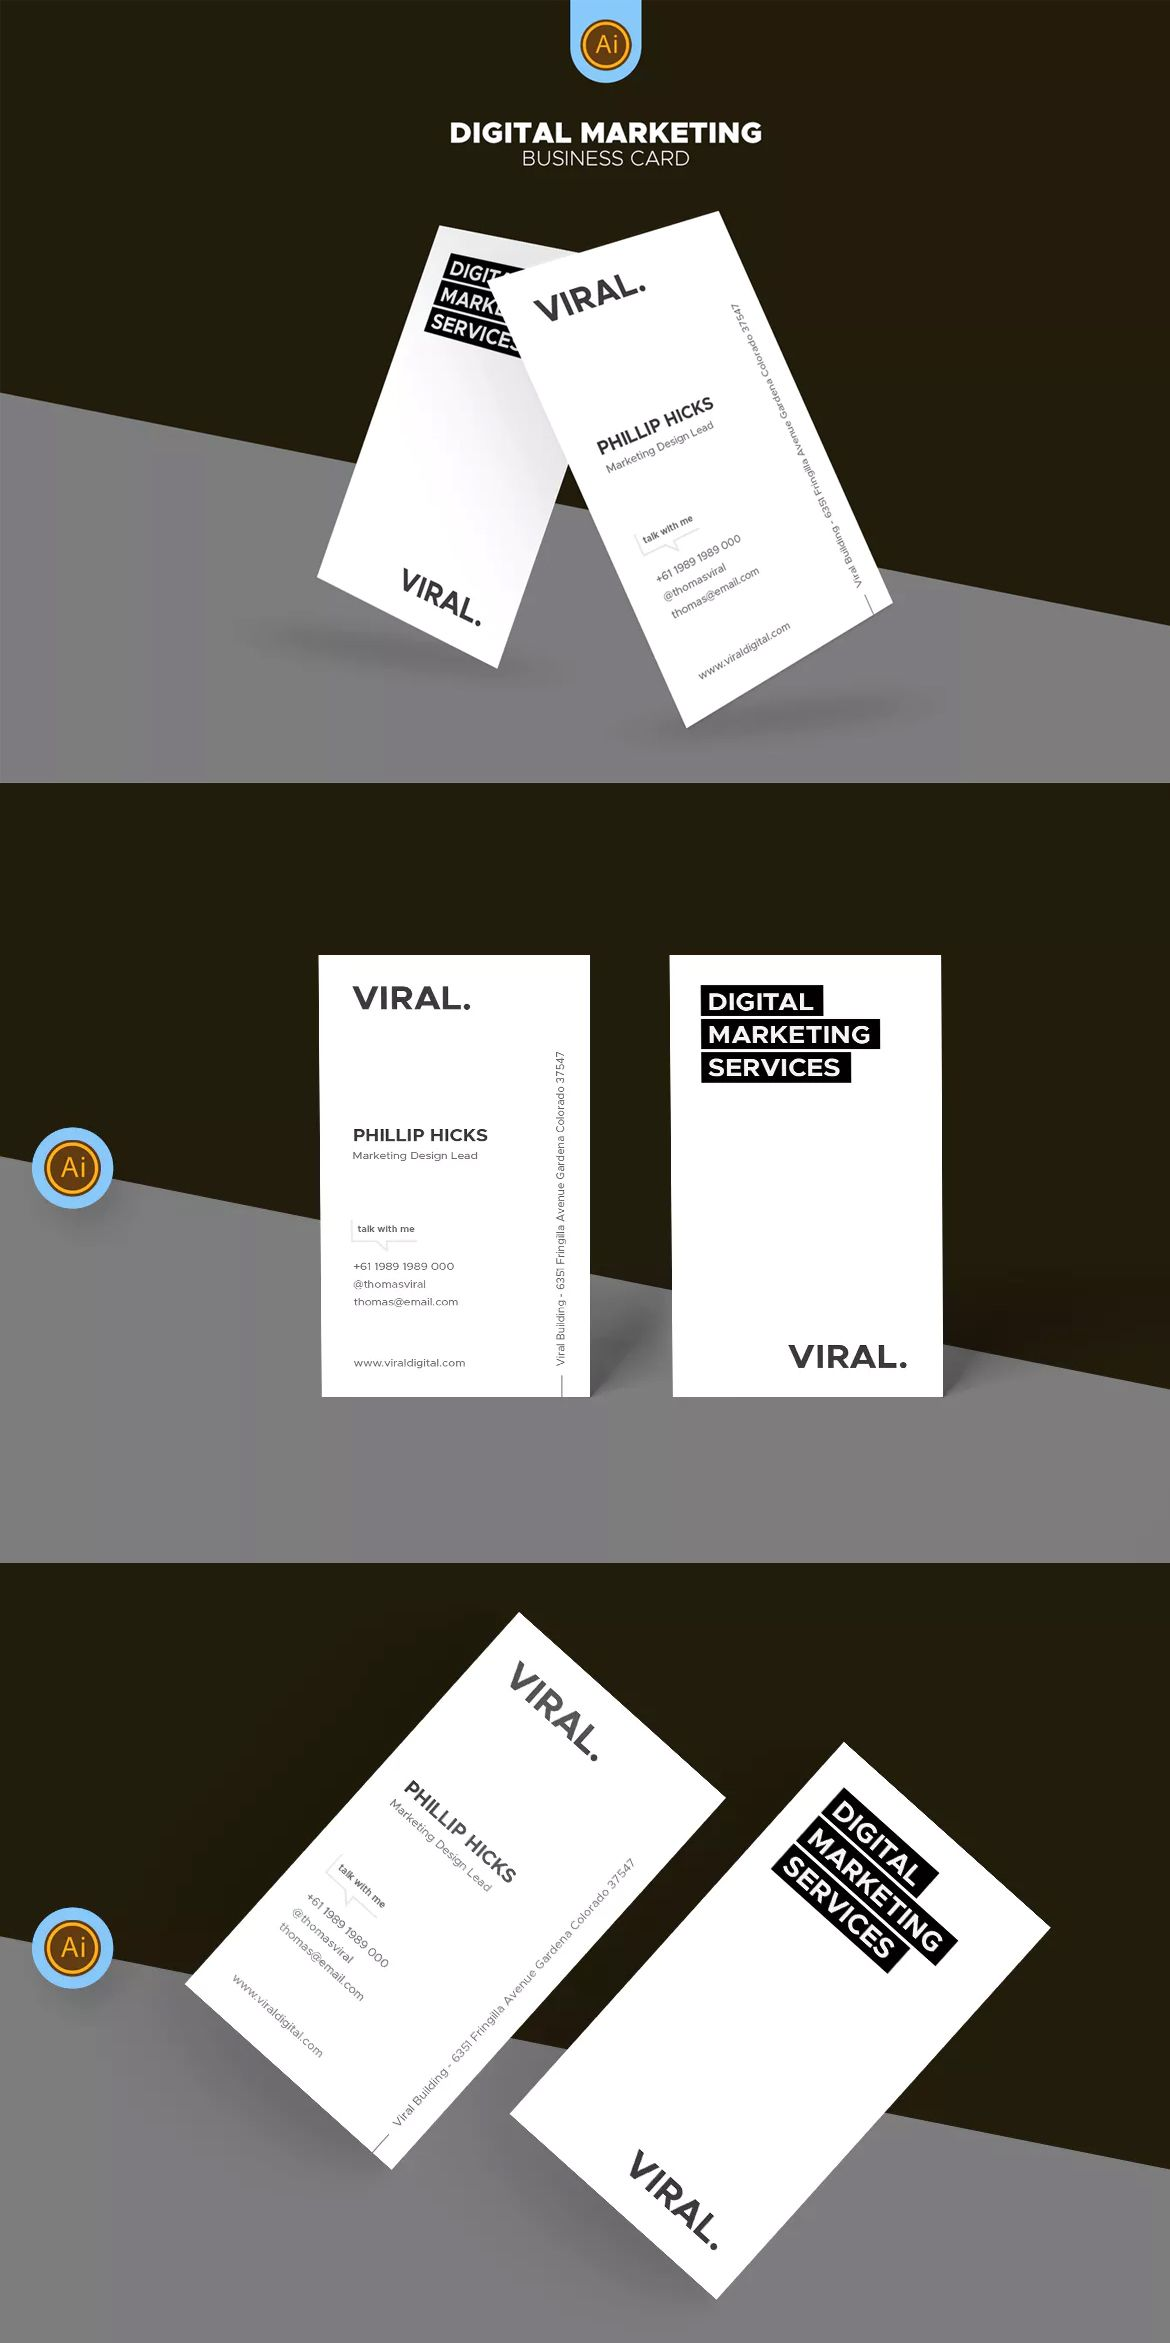 Digital marketing business card template ai unlimiteddownloads digital marketing business card template ai unlimiteddownloads cheaphphosting Image collections